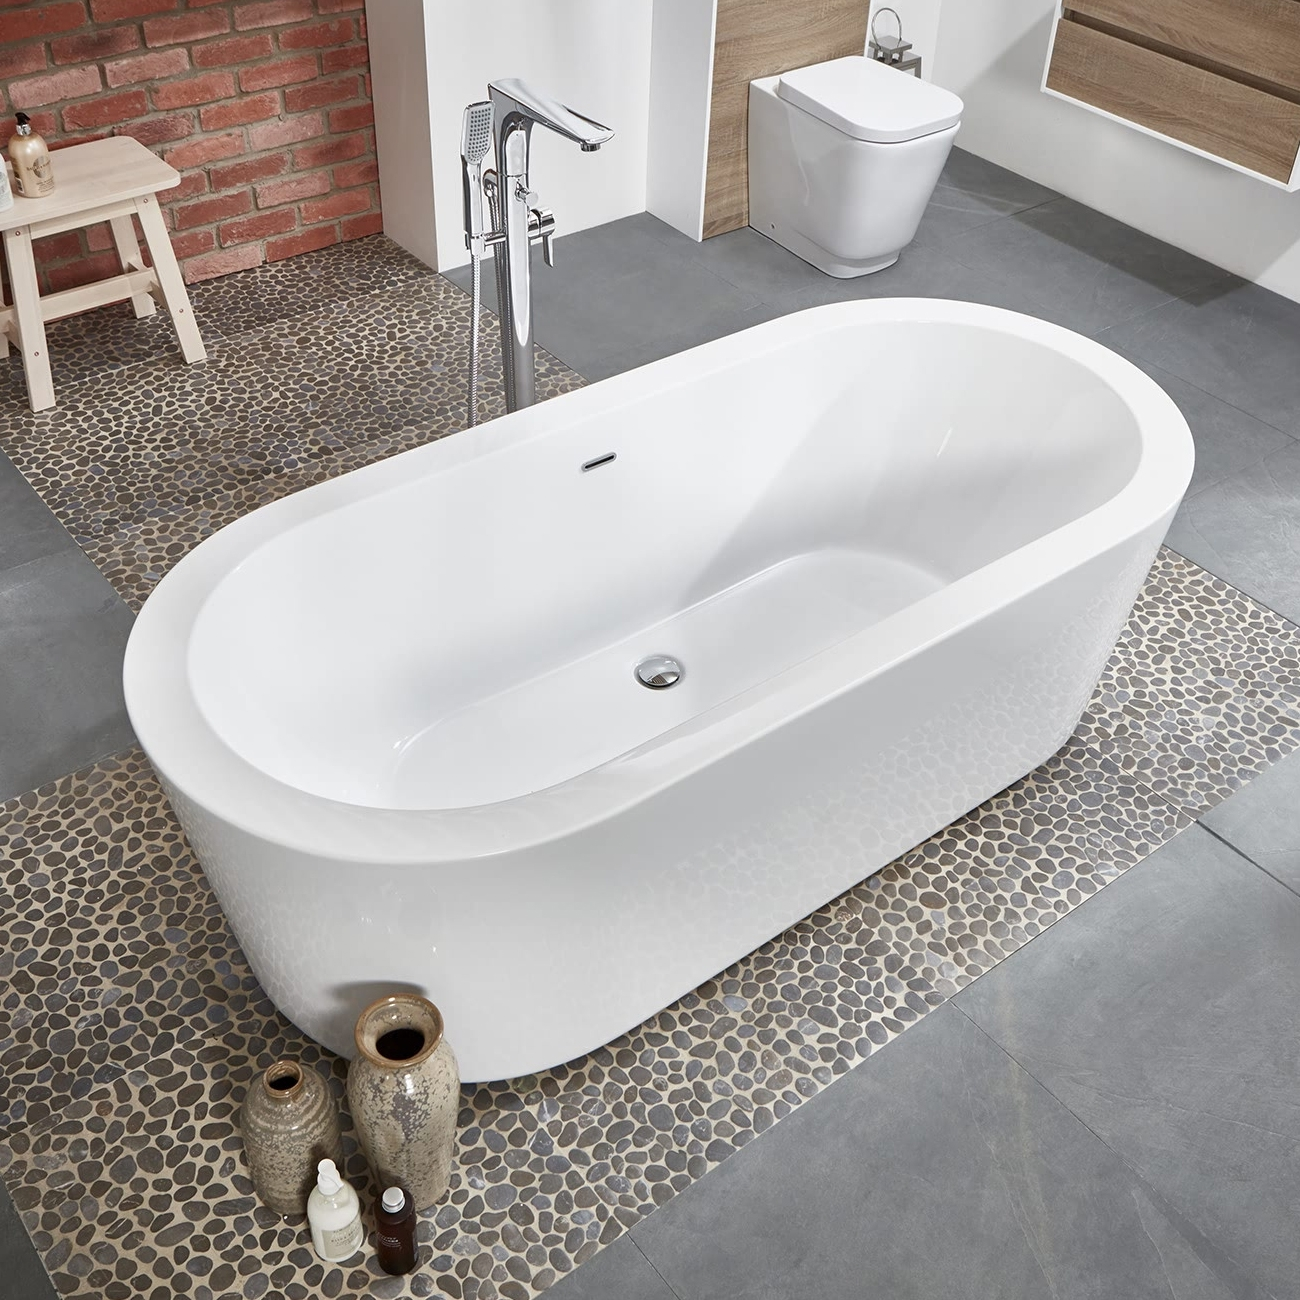 Verona Rondo Freestanding Double Ended Bath 1680mm x 780mm - White